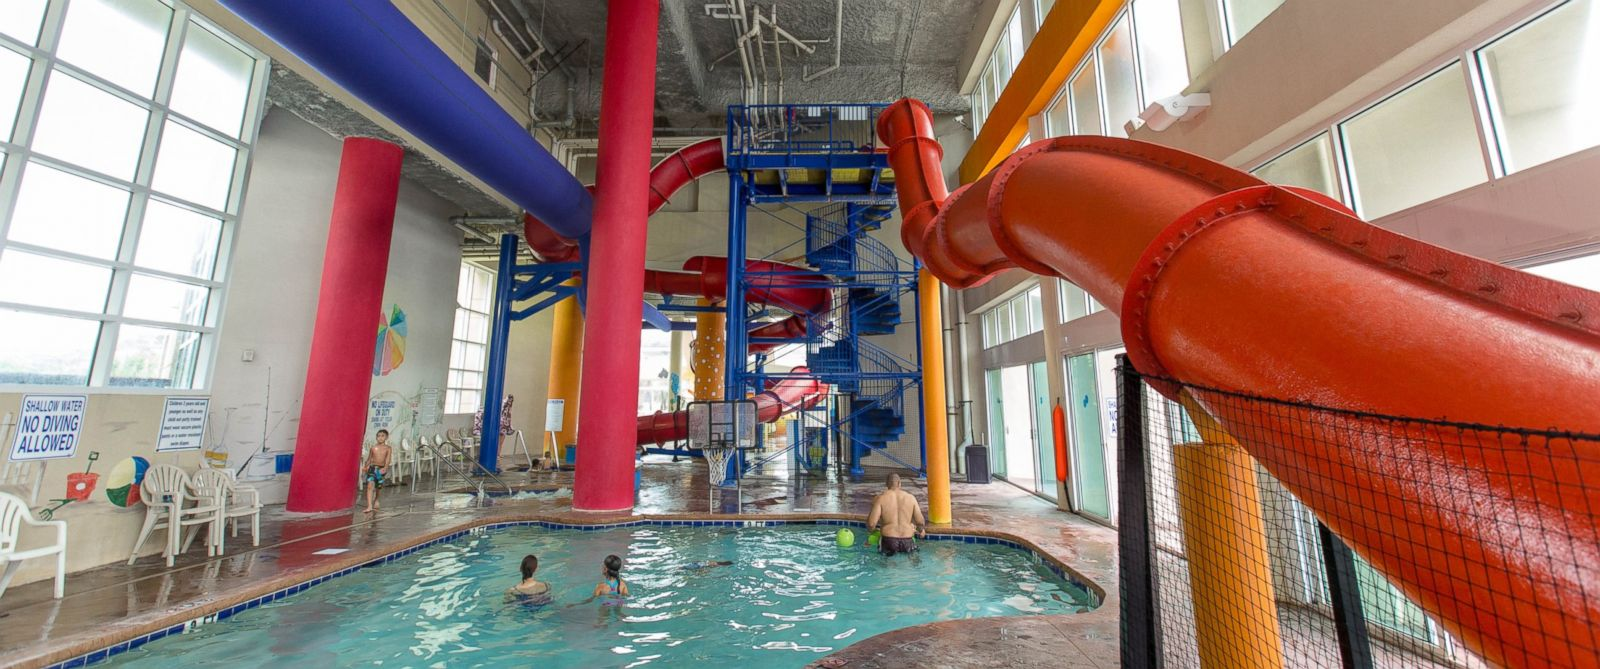 Hotel With Waterpark Inside Myrtle Beach Sc